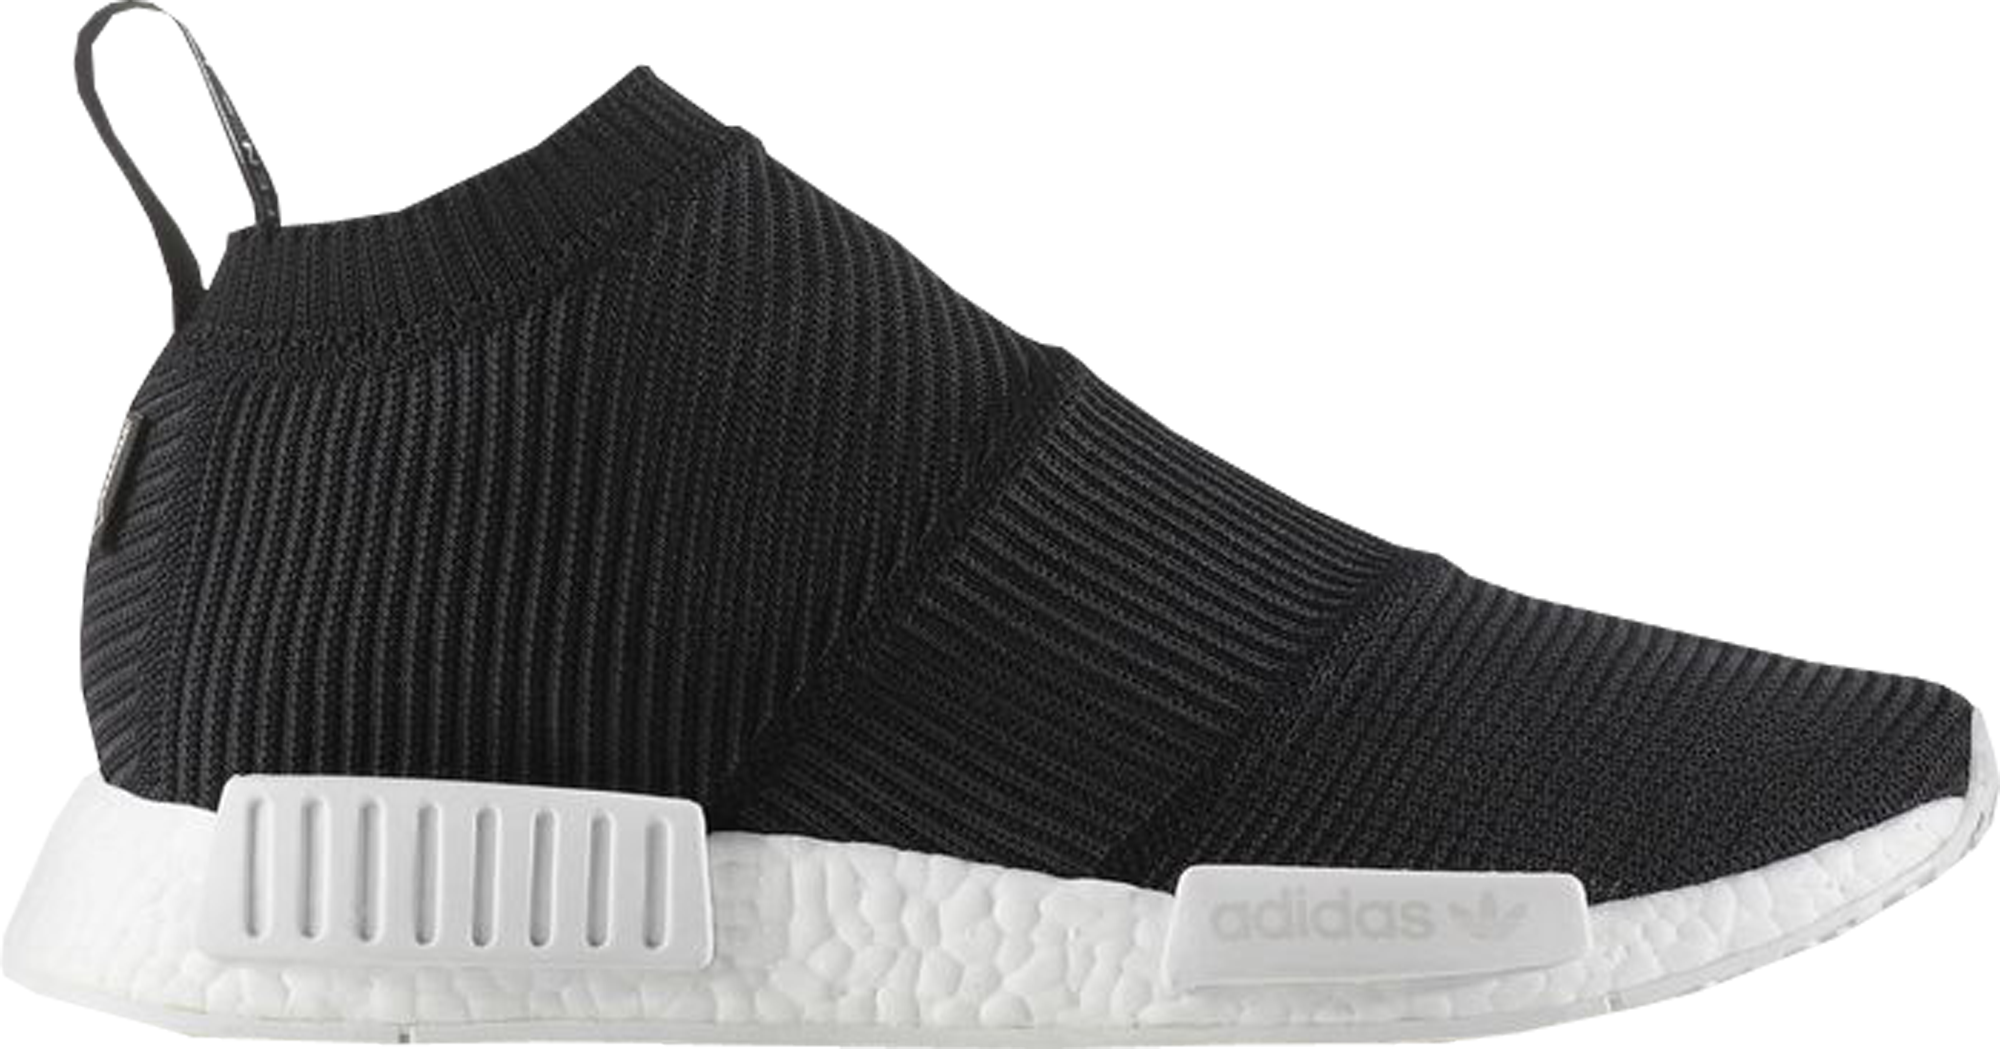 a8339d709 Mikitype Nmd Adidas Black Sneakers Shoes For Women Adidas A405 ...